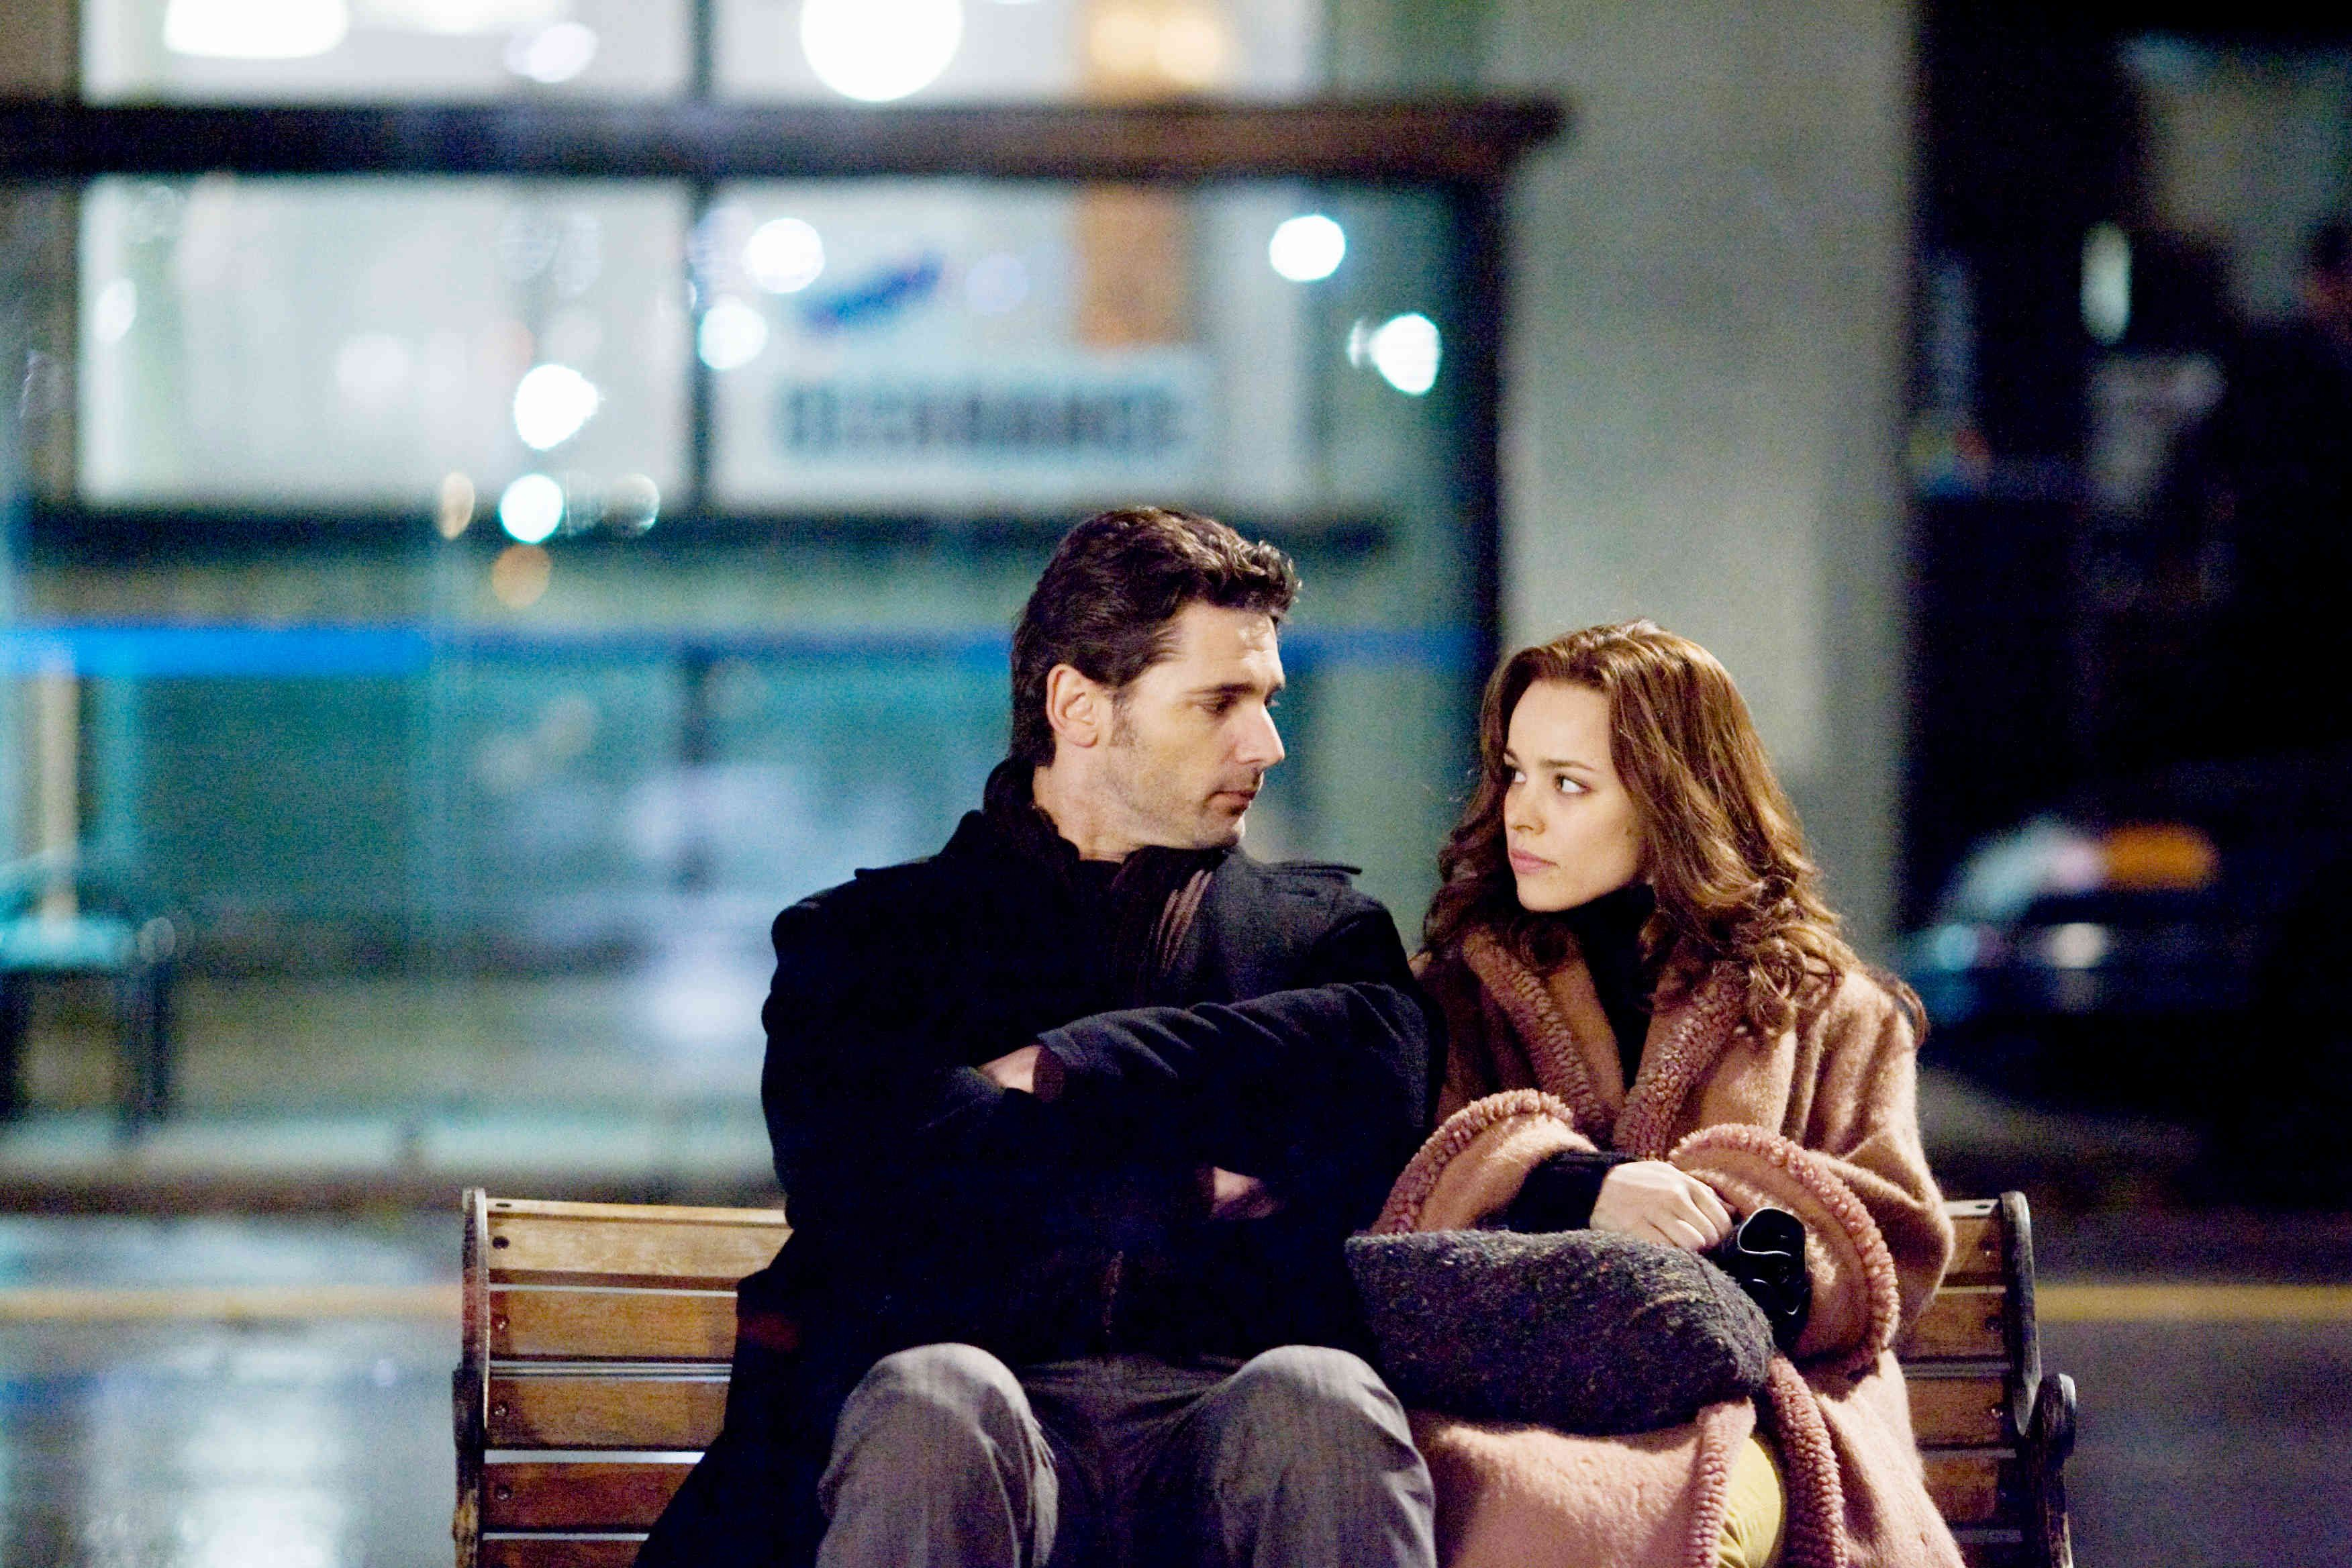 Eric Bana and Rachel McAdams in The Time Traveler's Wife (2009)